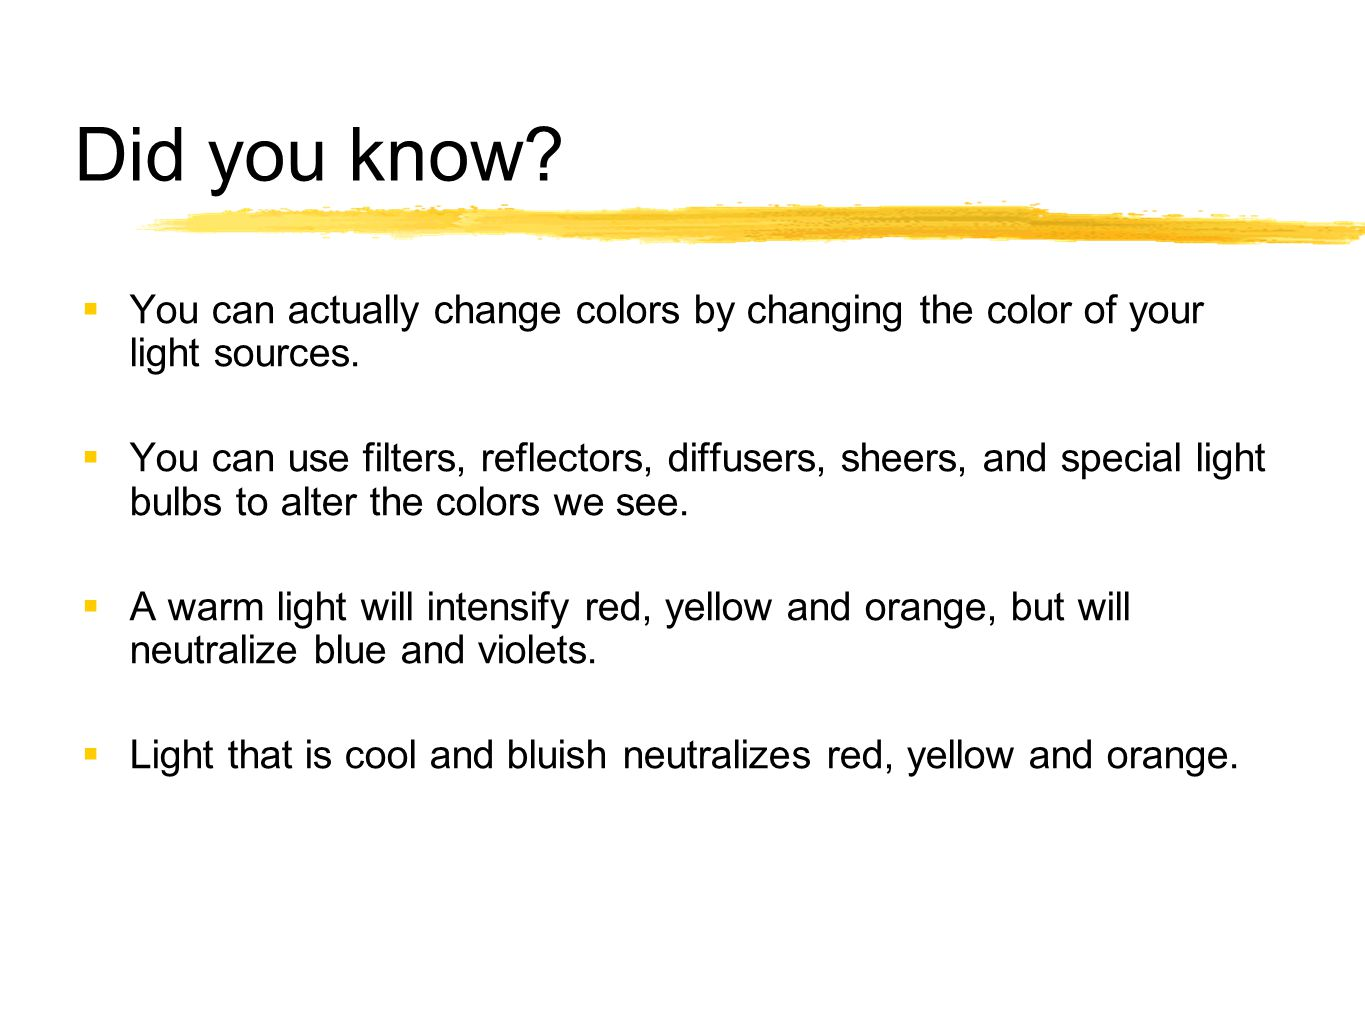 Did you know You can actually change colors by changing the color of your light sources.